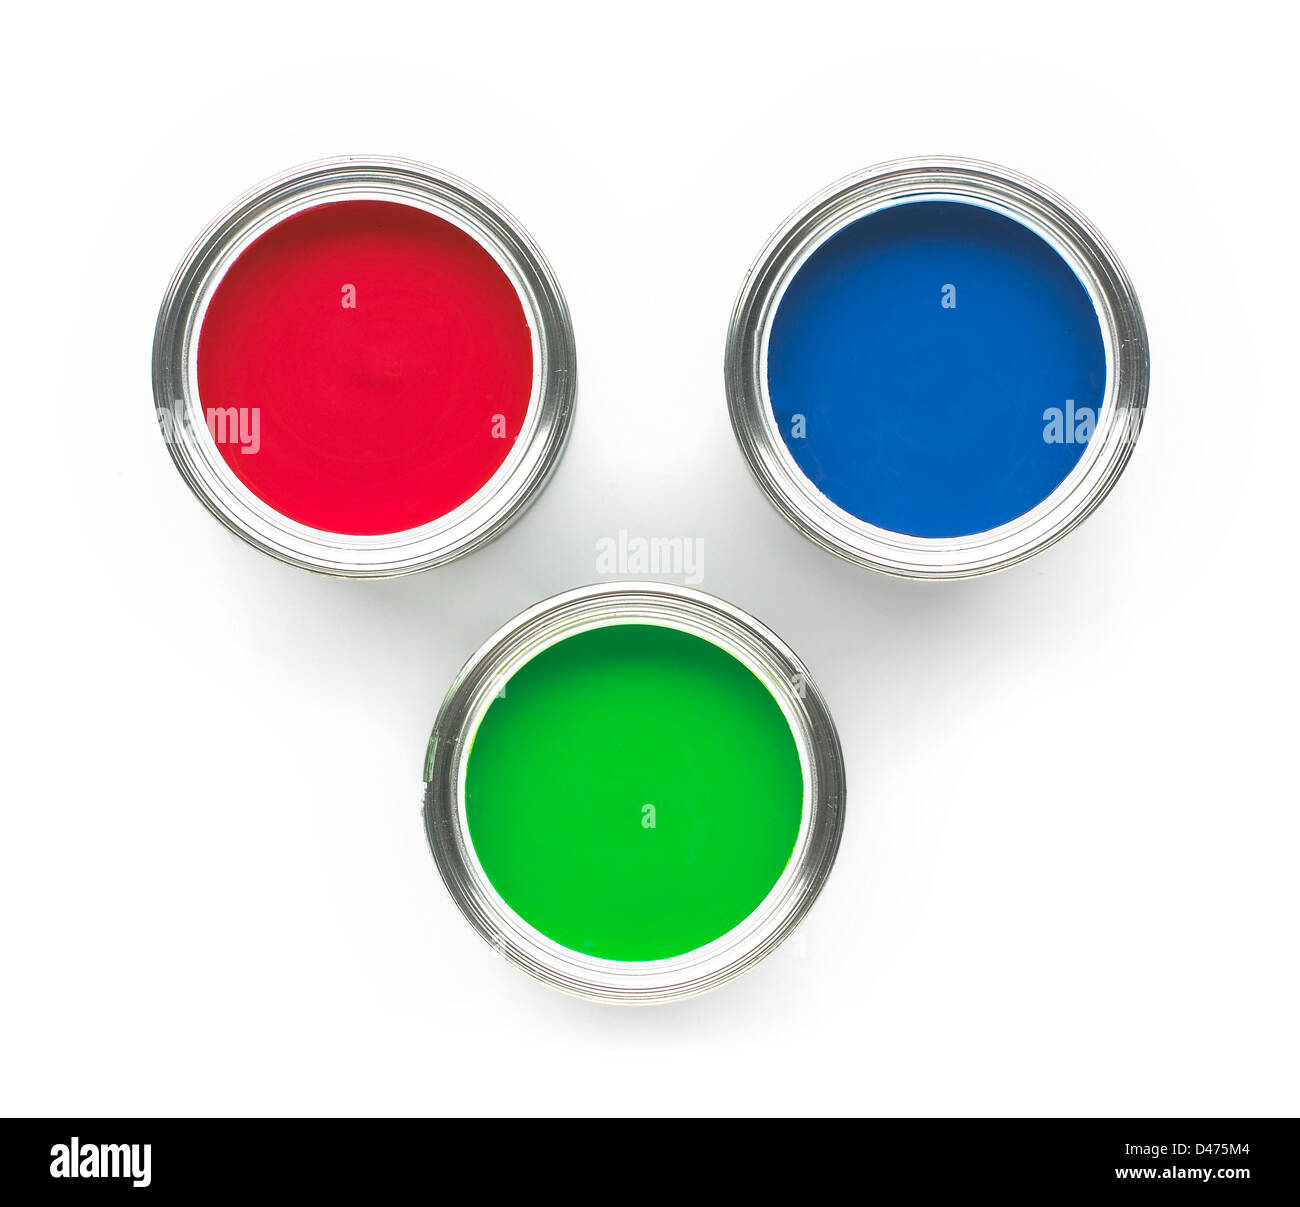 Pots of red blue and green paints - Stock Image